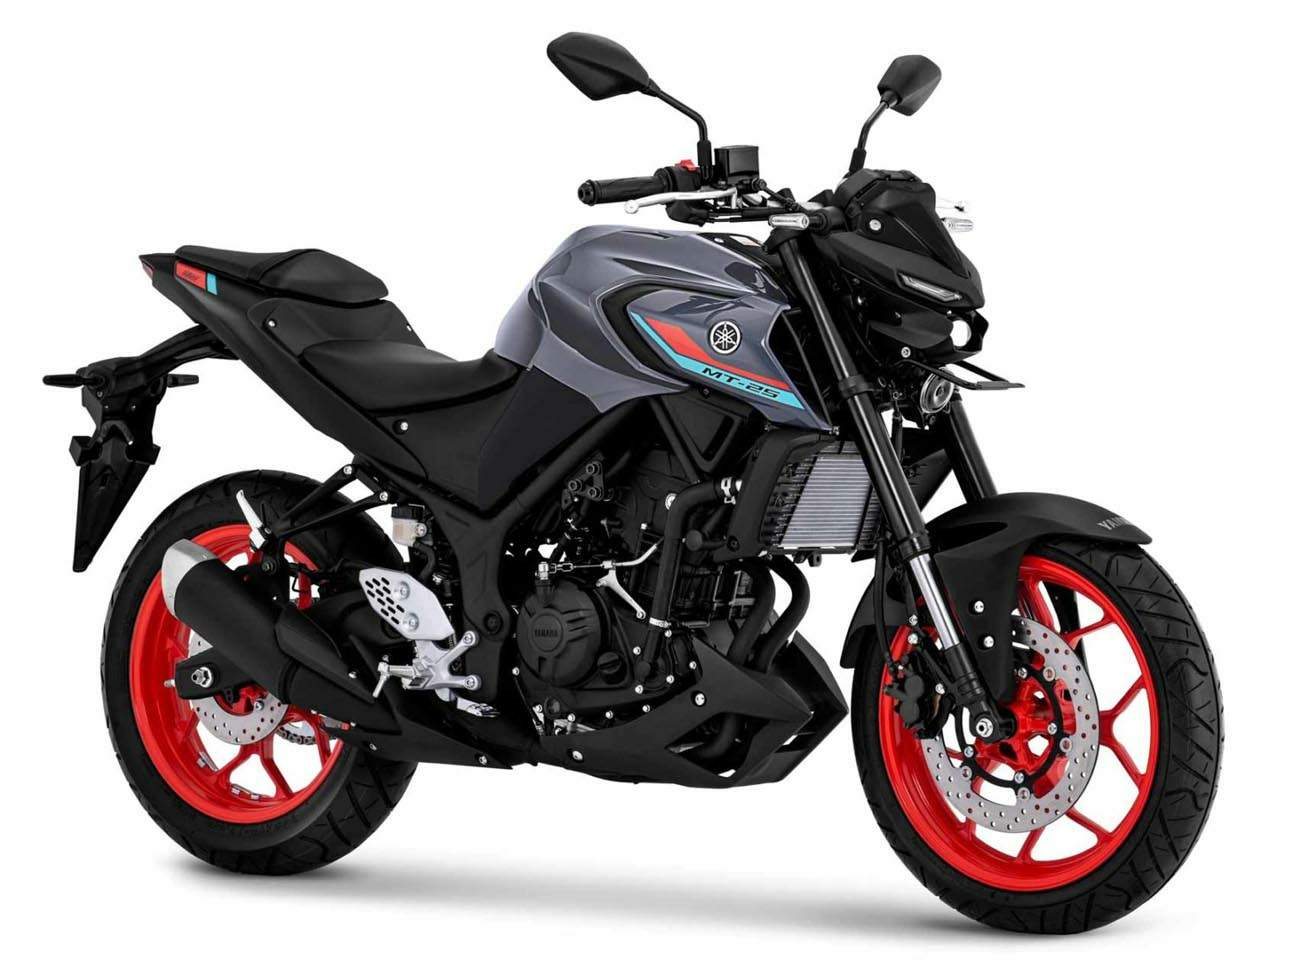 Yamaha MT 25 technical specifications